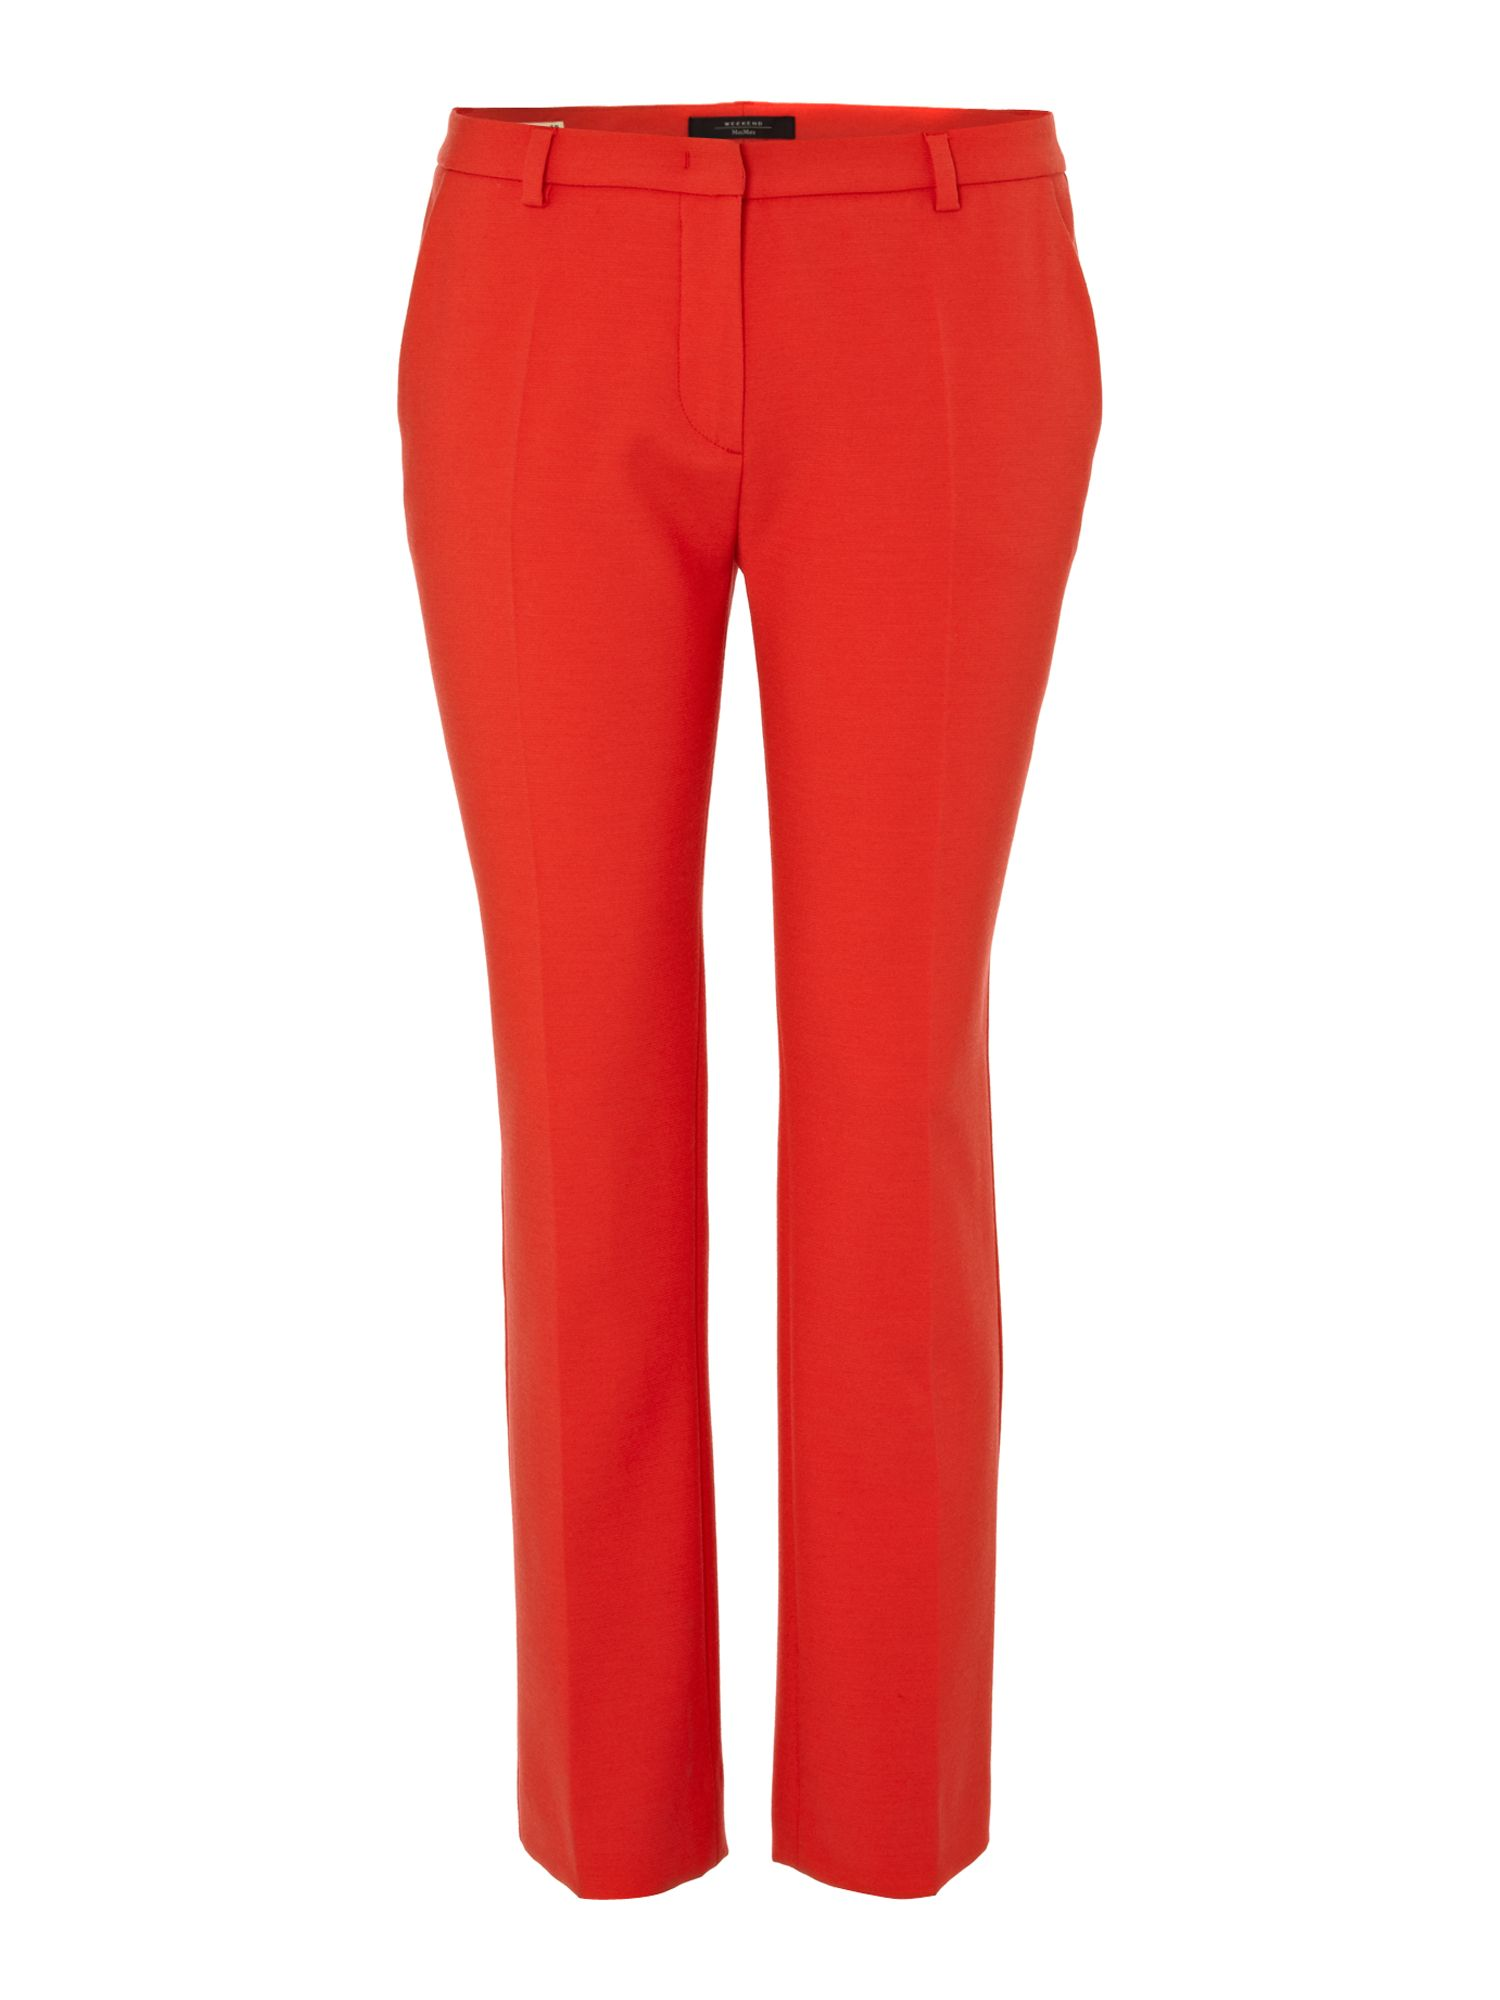 Cileno slim leg trousers